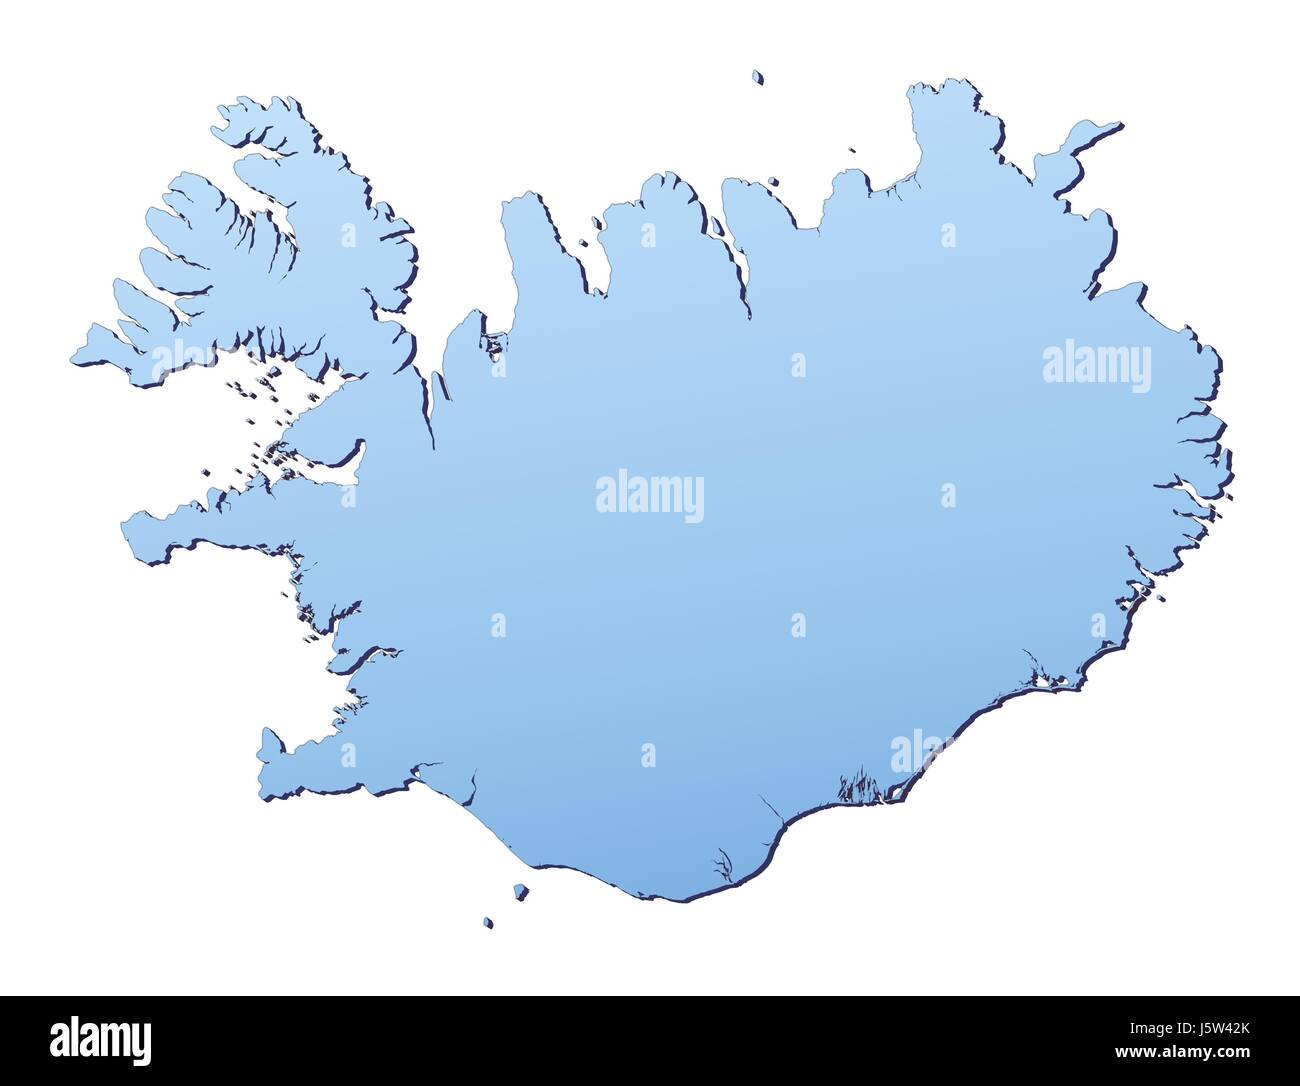 Outline map country iceland stock photos outline map country blue isolated outline iceland gradient map atlas map of the world backdrop stock image gumiabroncs Images